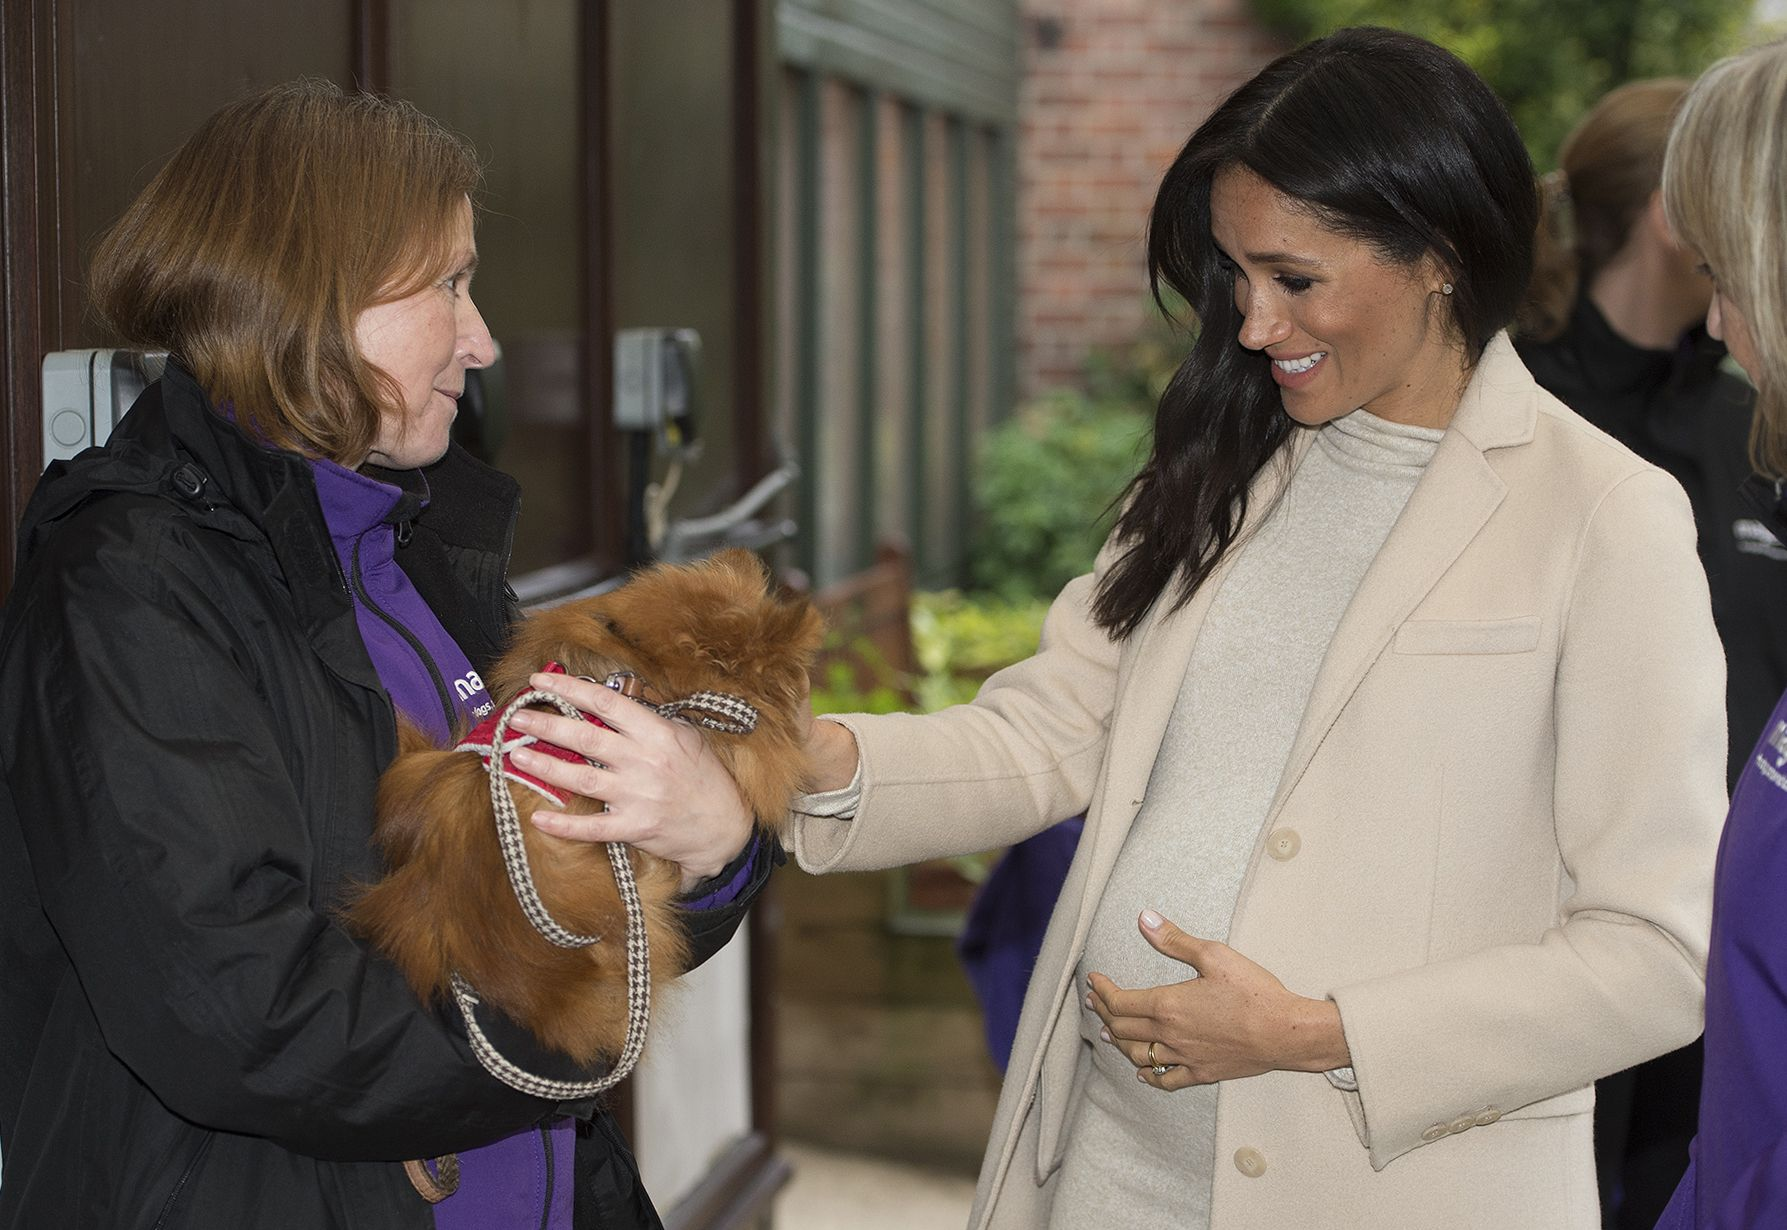 Meghan Markle meets a dog at Mayhew, a charity of which she is now patron.